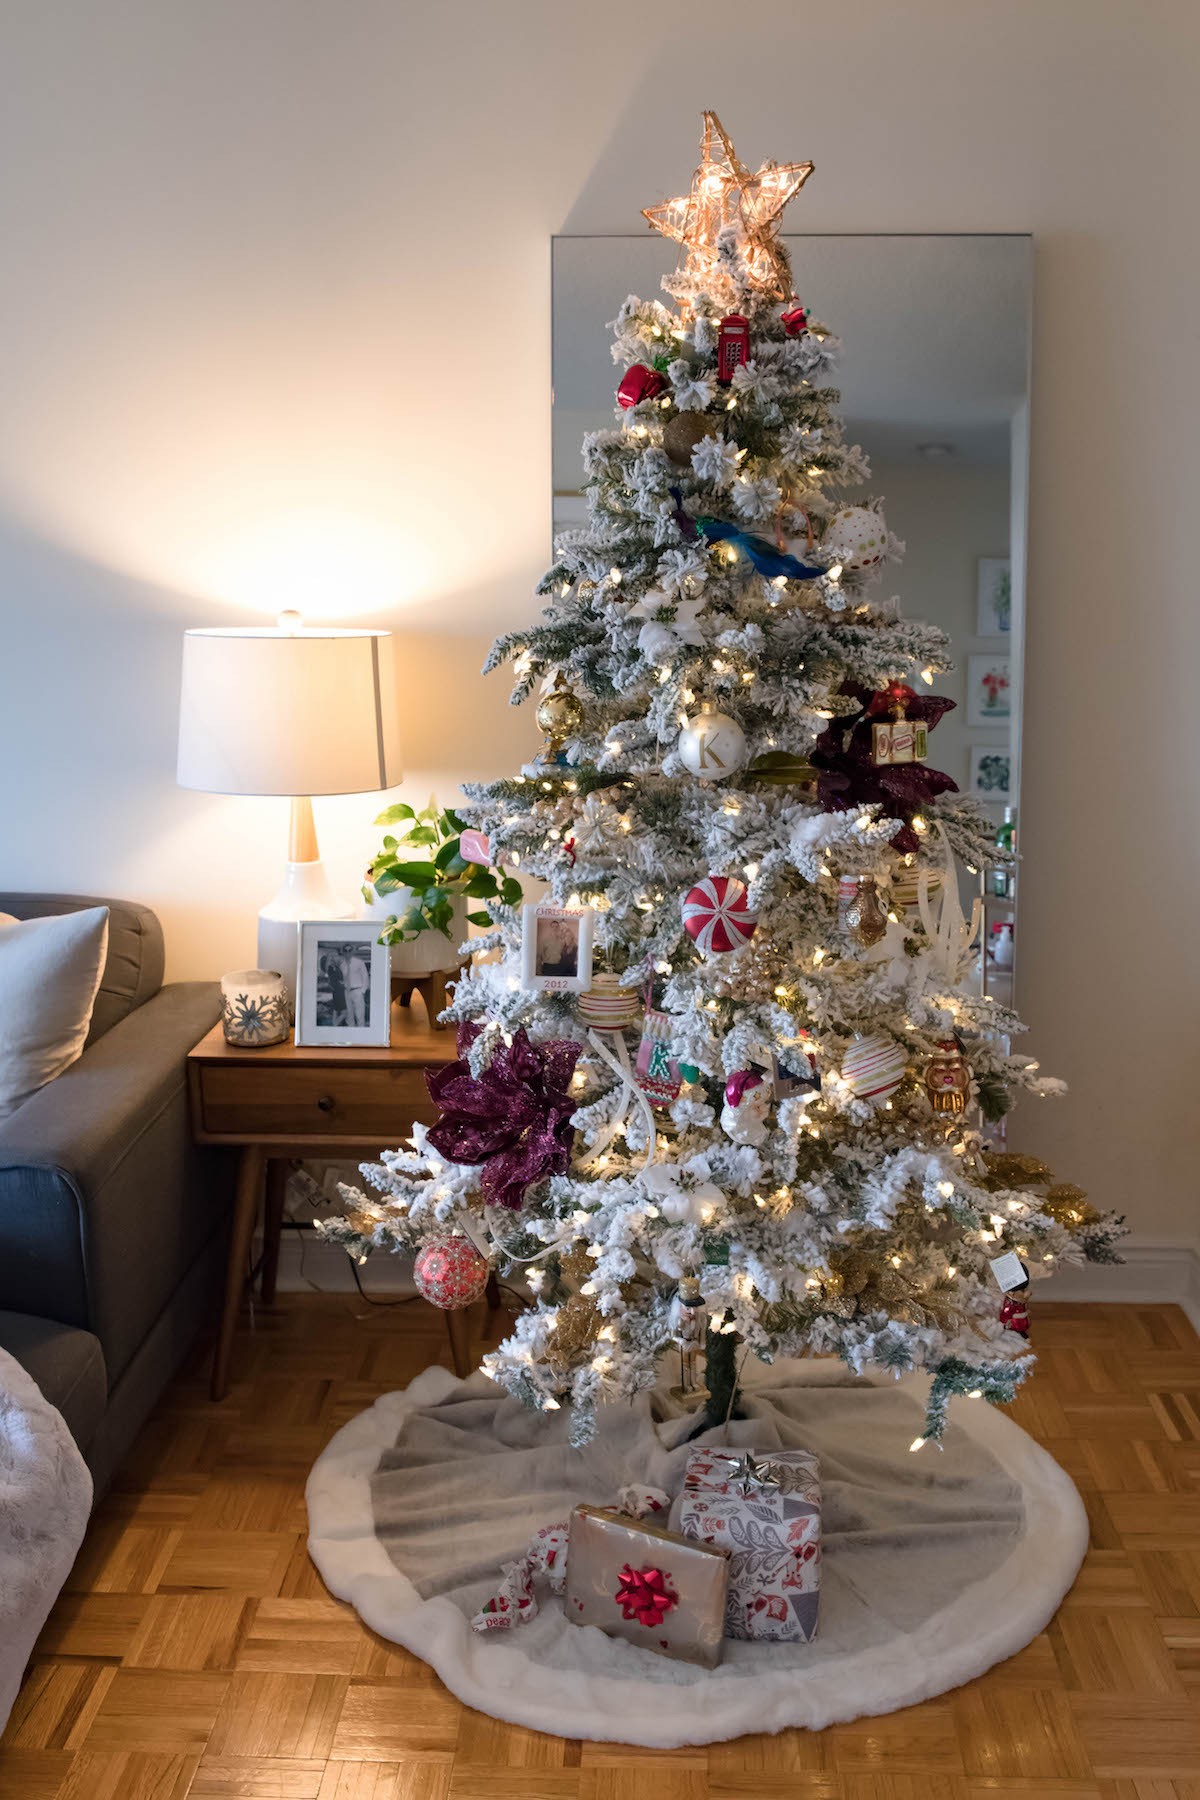 Christmas Decorations For Small Apartment  New York City Apartment Holiday Decorations